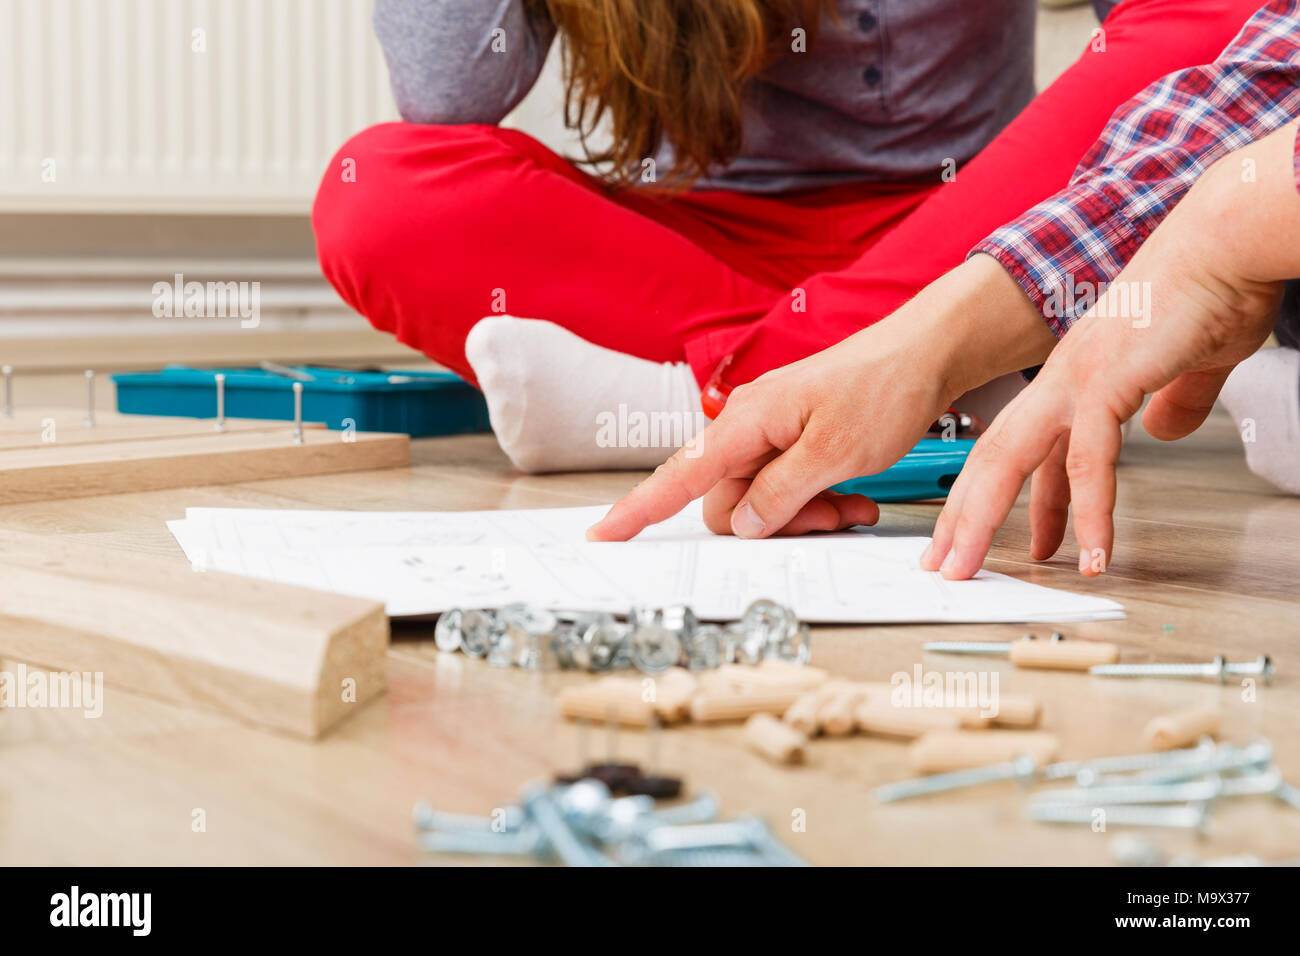 Home improvement do it yourself activity in new home stock photo home improvement do it yourself activity in new home solutioingenieria Images